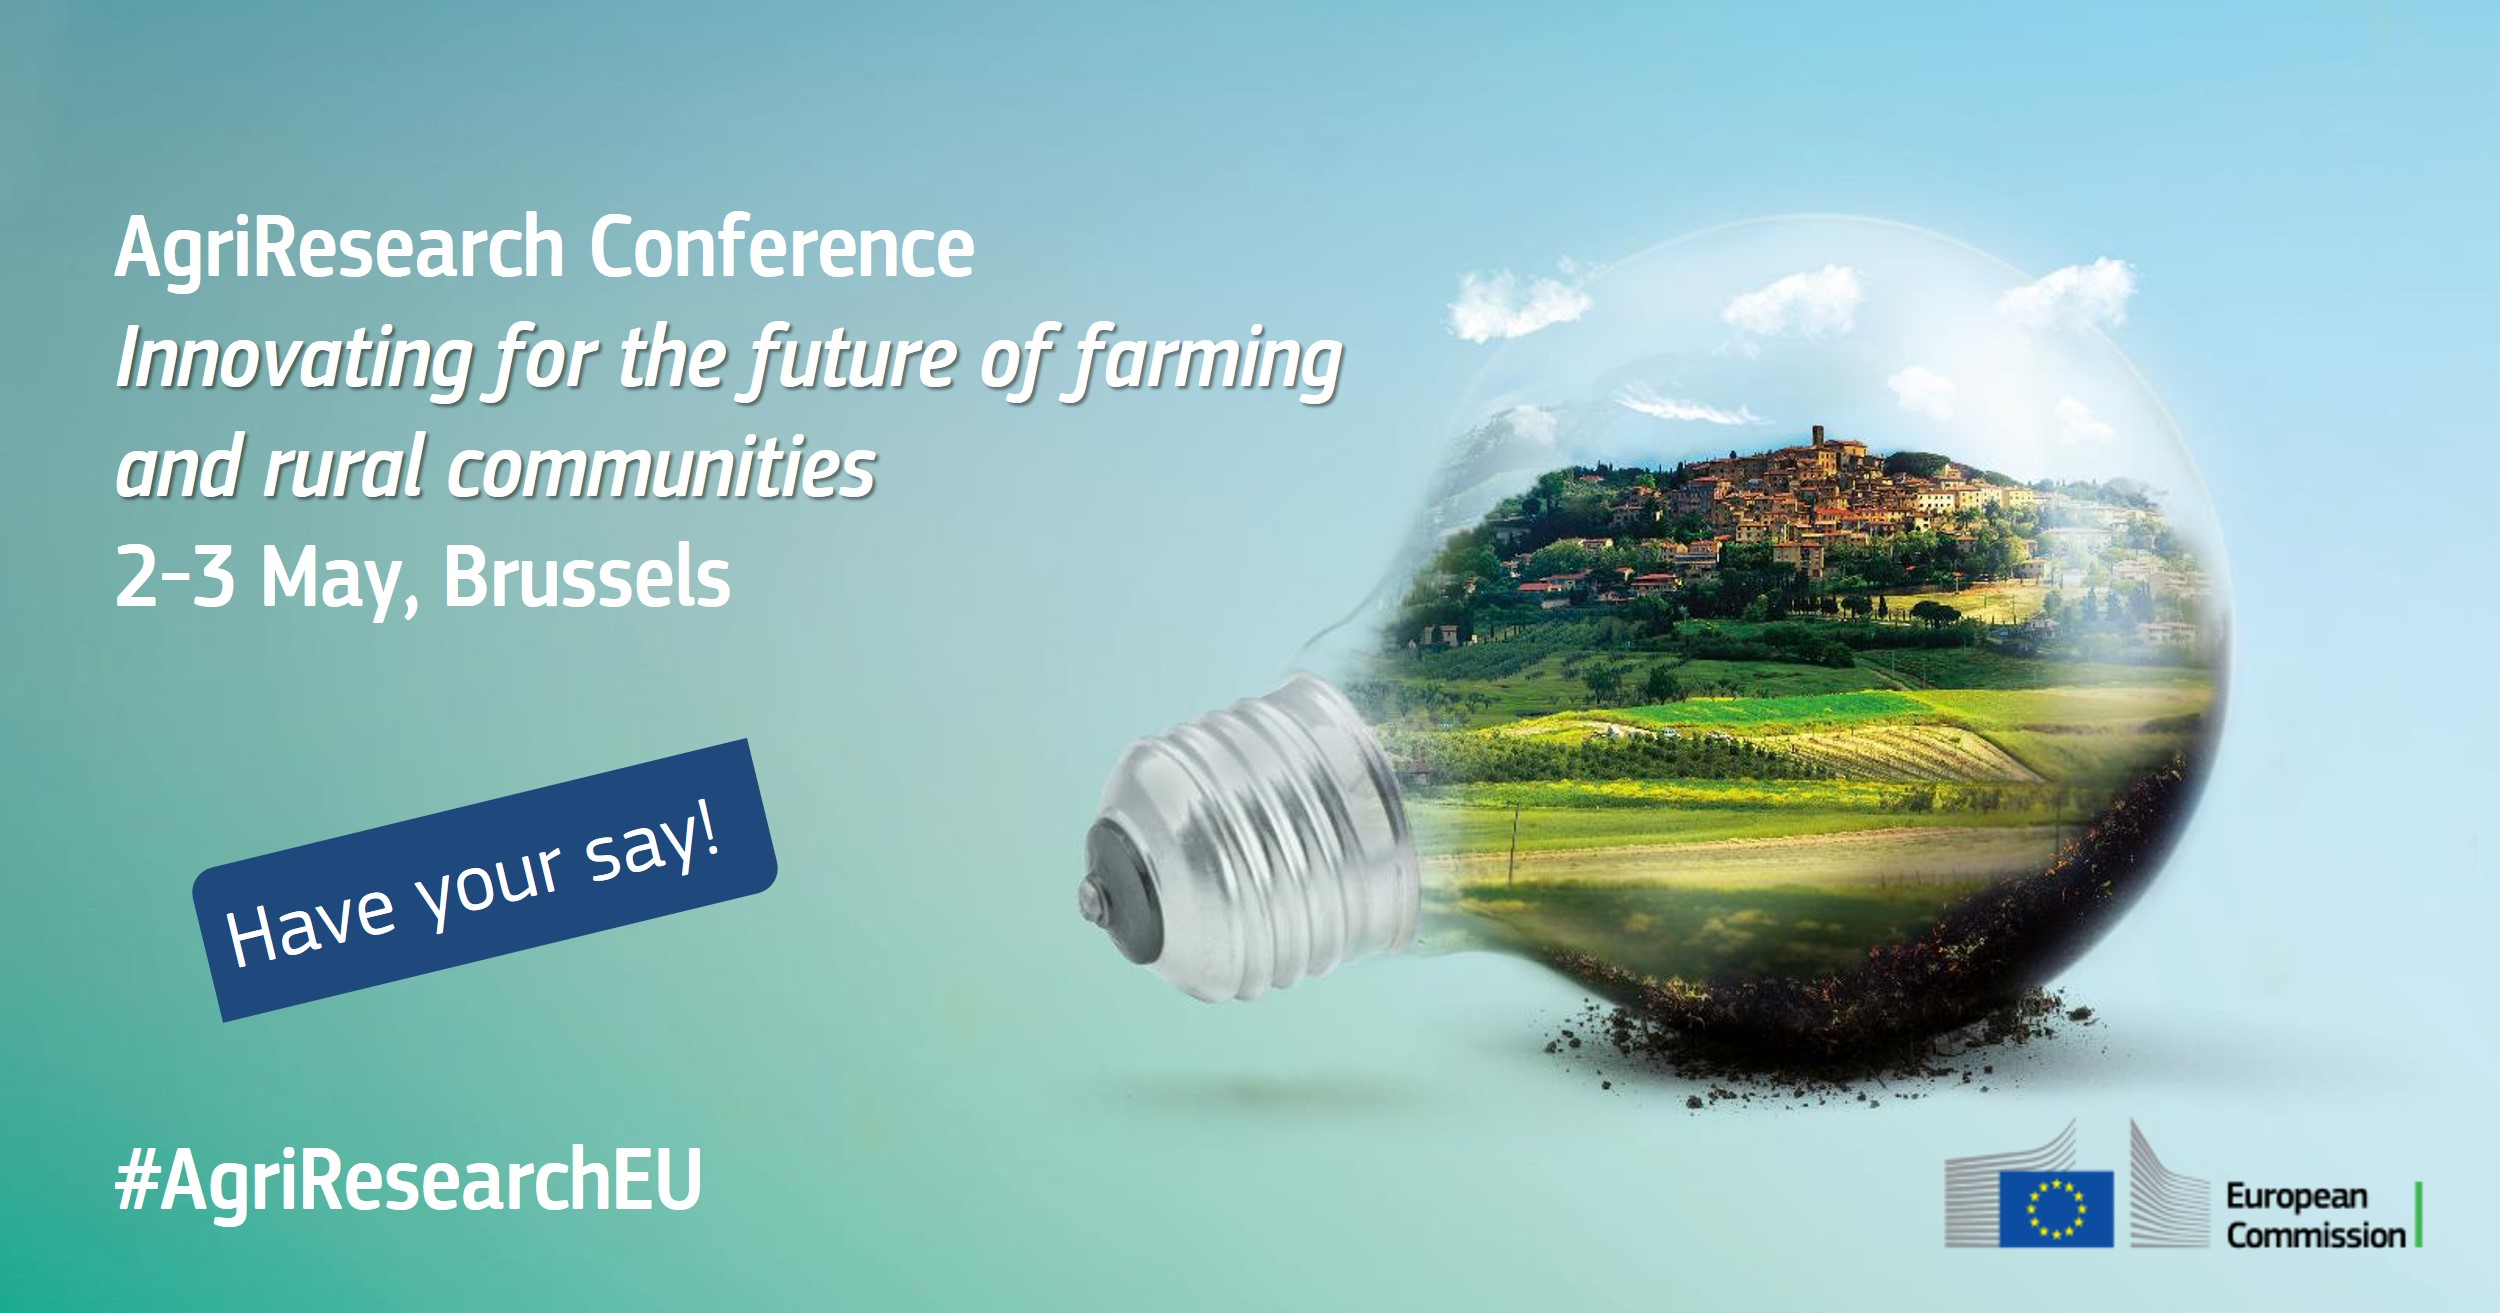 agriresearchconf_visual_31225_6